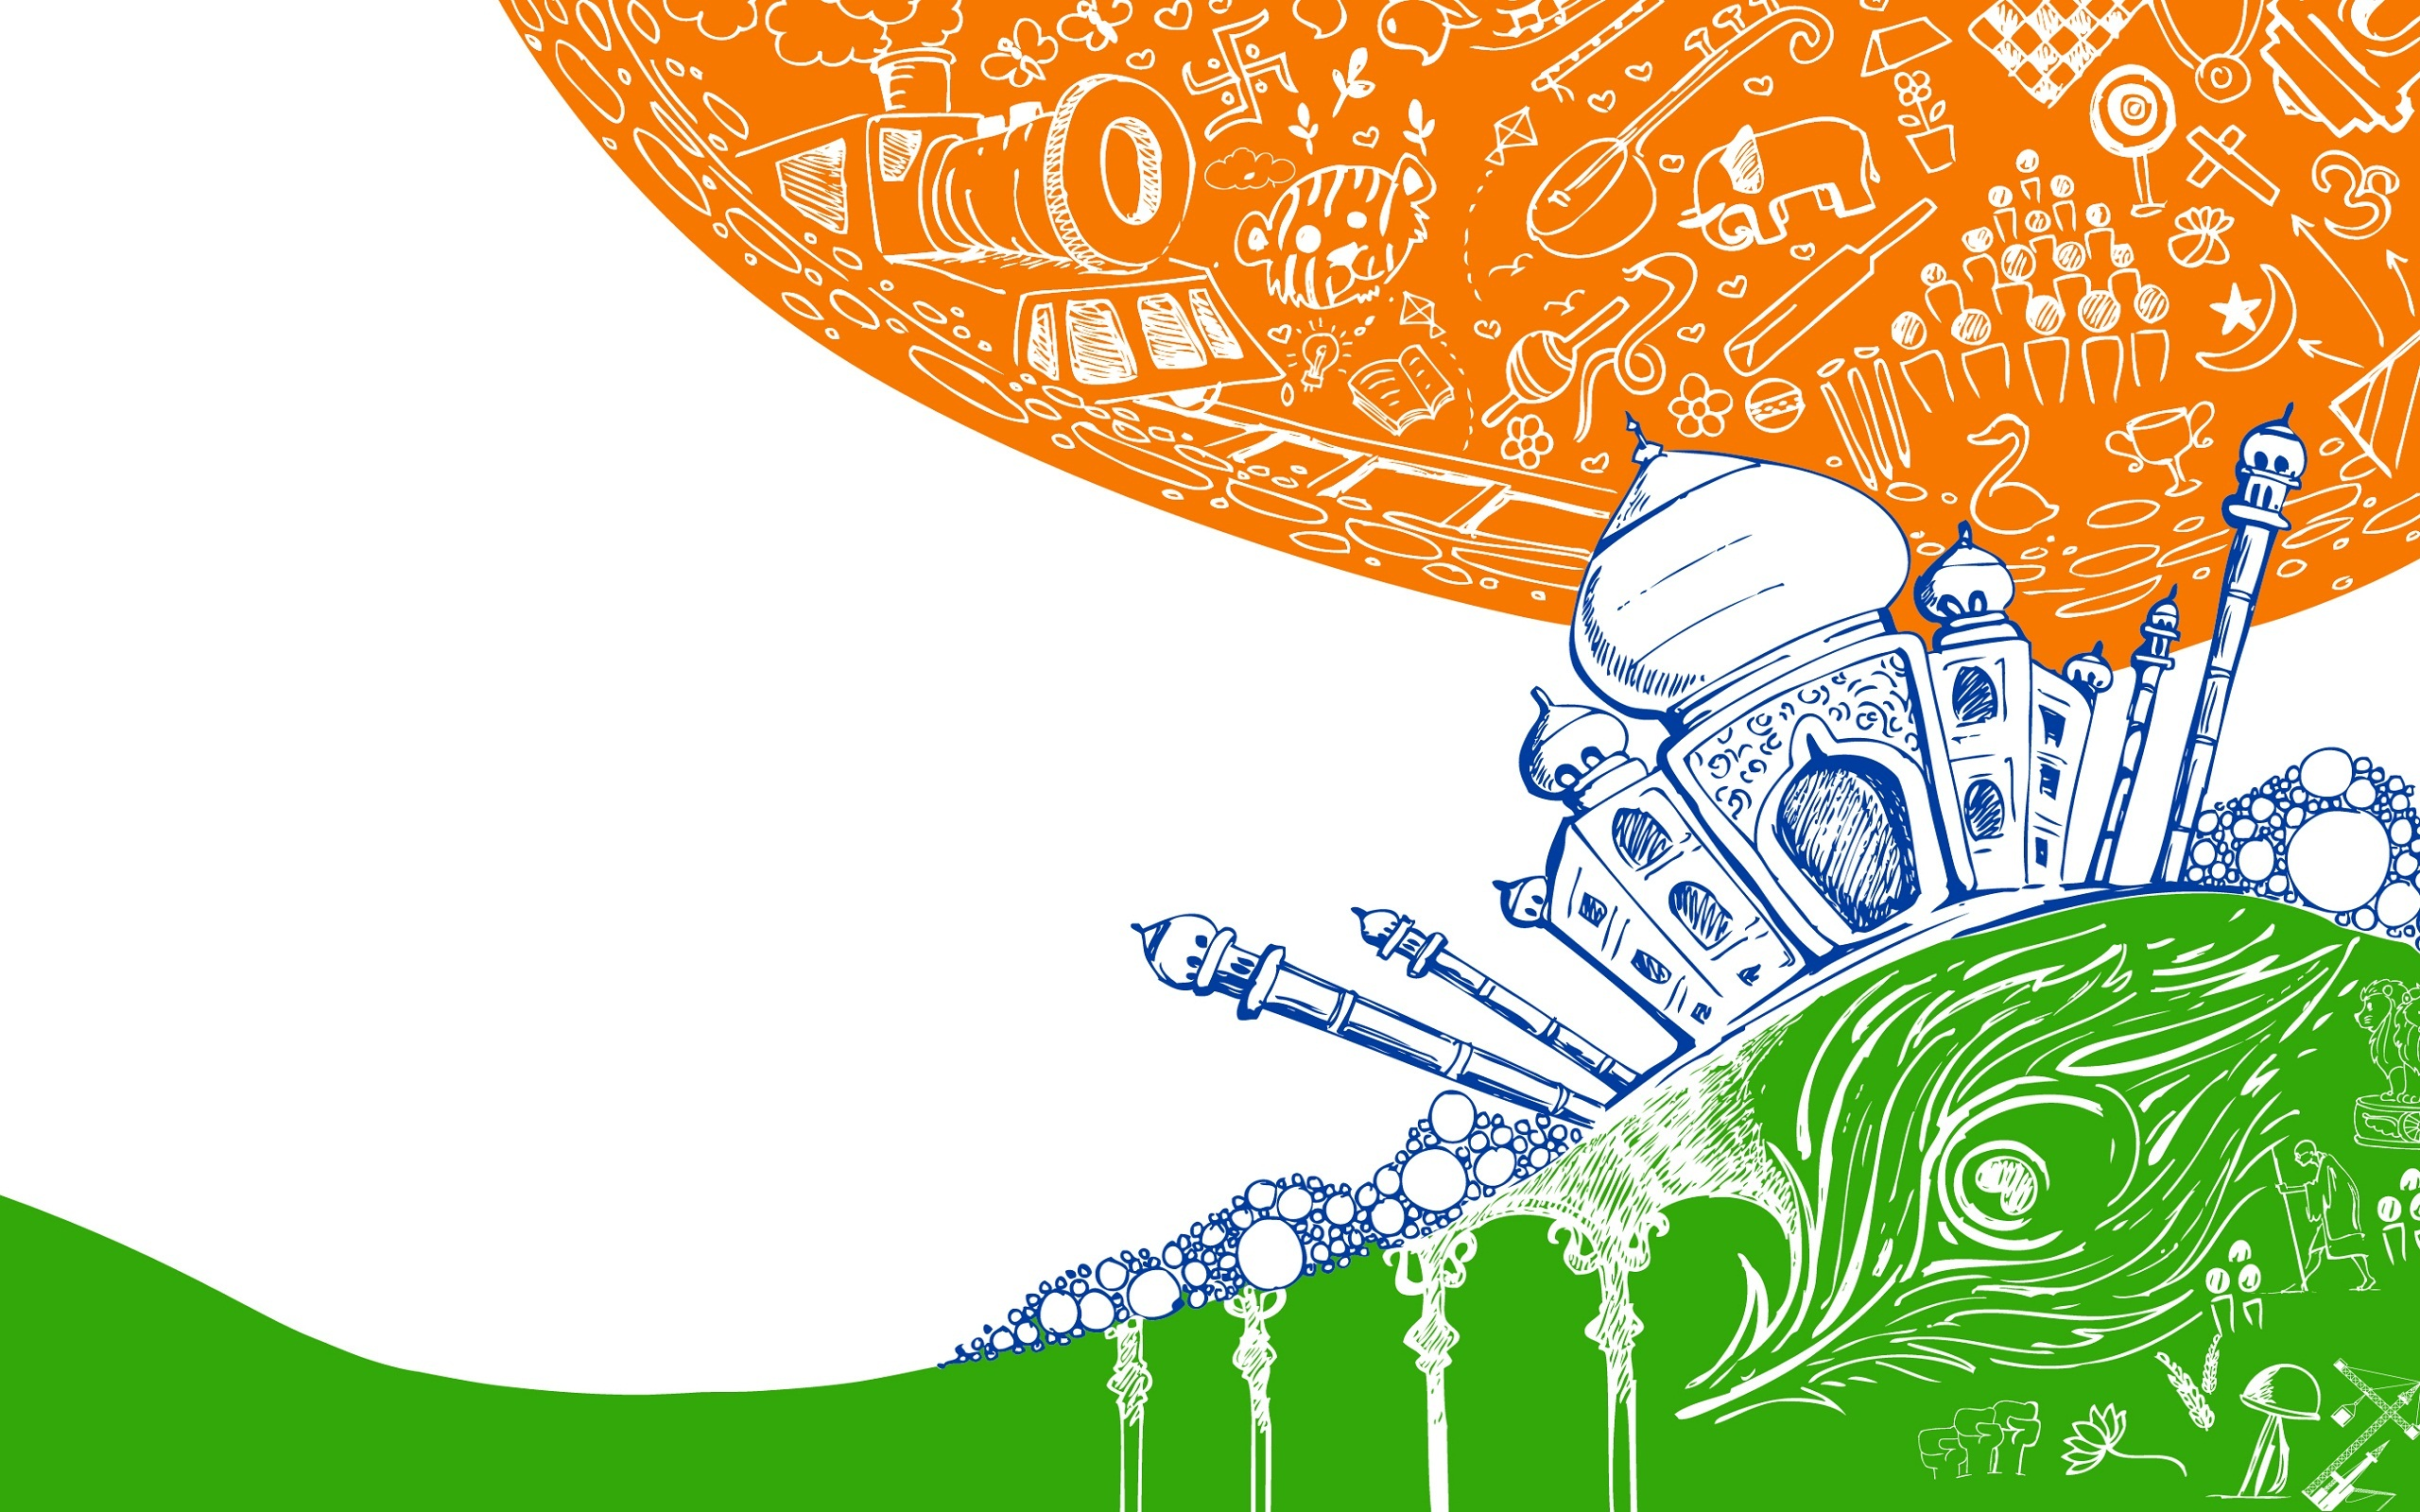 Indian Flag Full Hd Wallpaper 26 January Republic Day 2014 Wallpapers 2560x1600 1122776